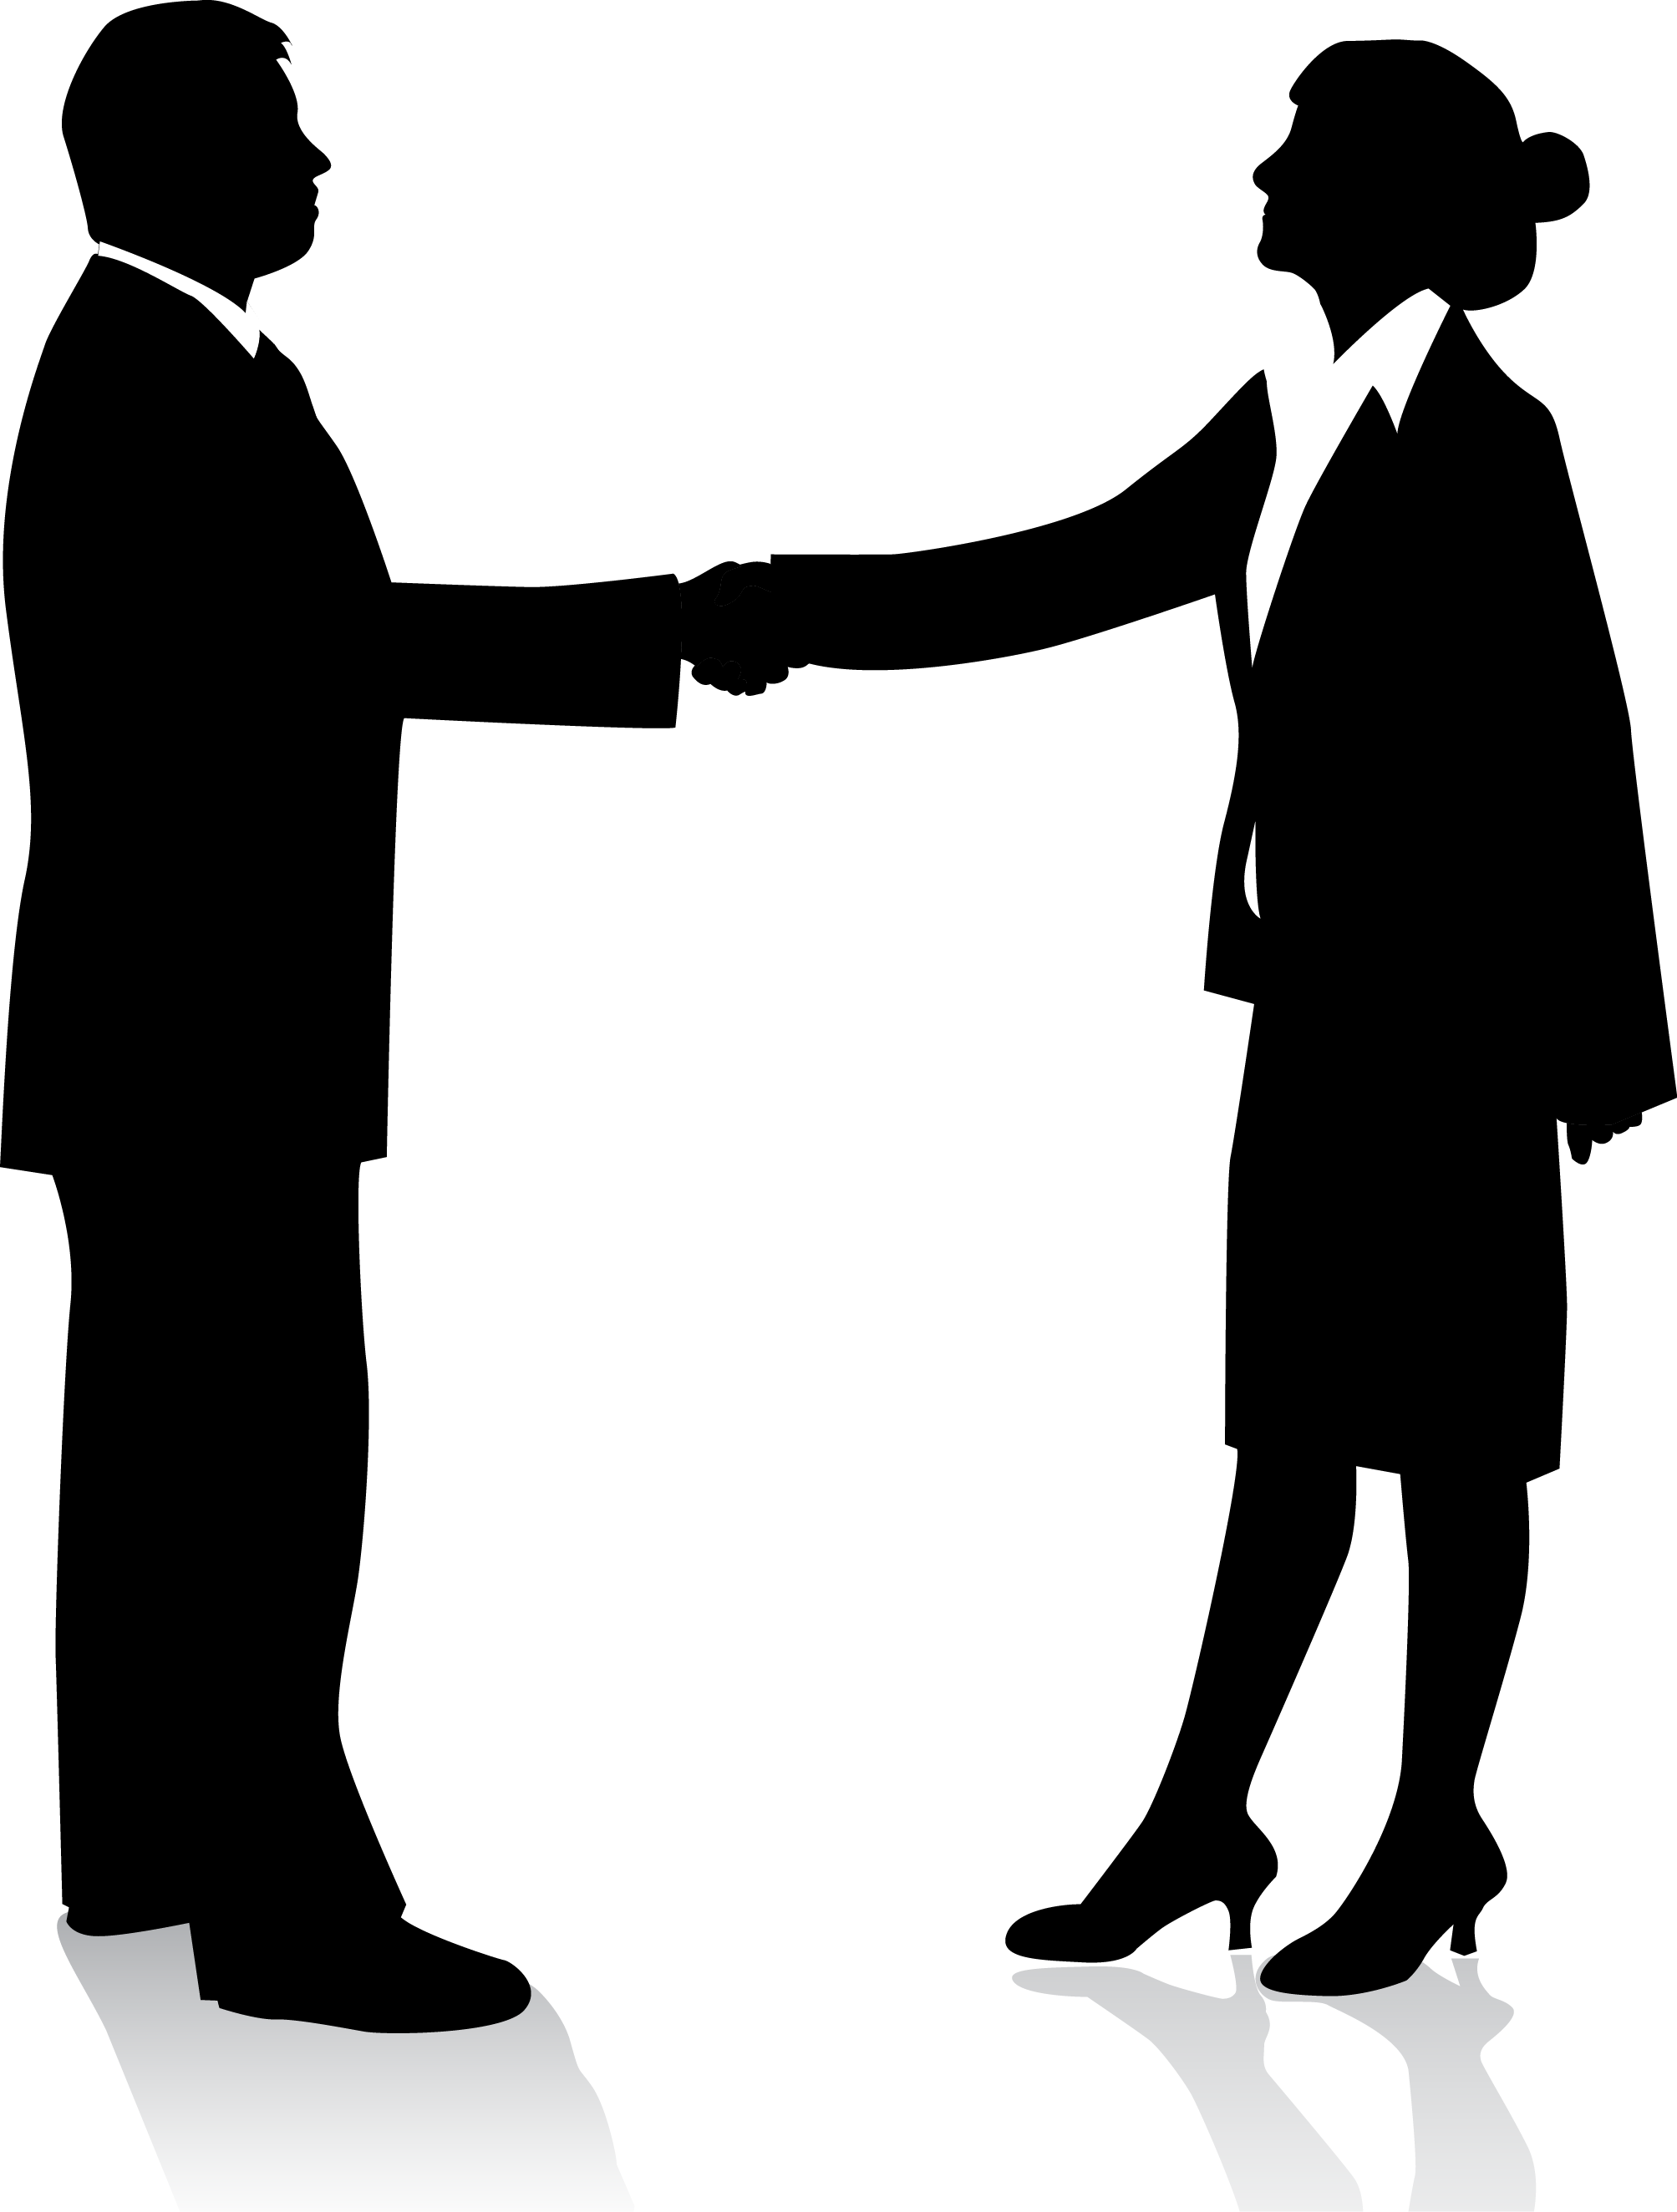 Similiar Handshake Silhouette Keywords.